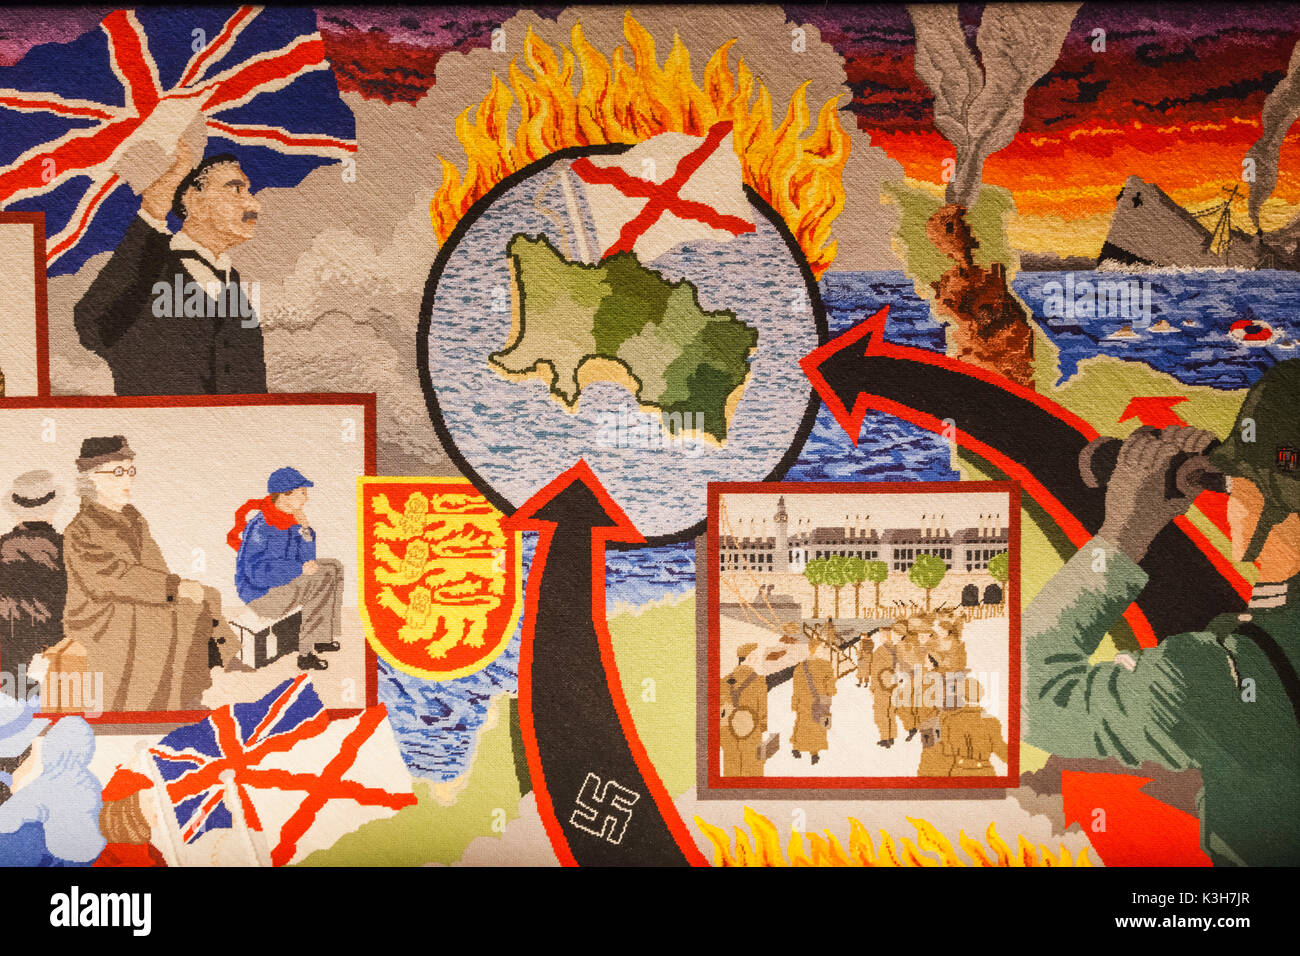 United Kingdom, Channel Islands, Jersey, St.Helier, Maritime Museum, The Occupation Tapestry Gallery, Tapestry depicting - Stock Image